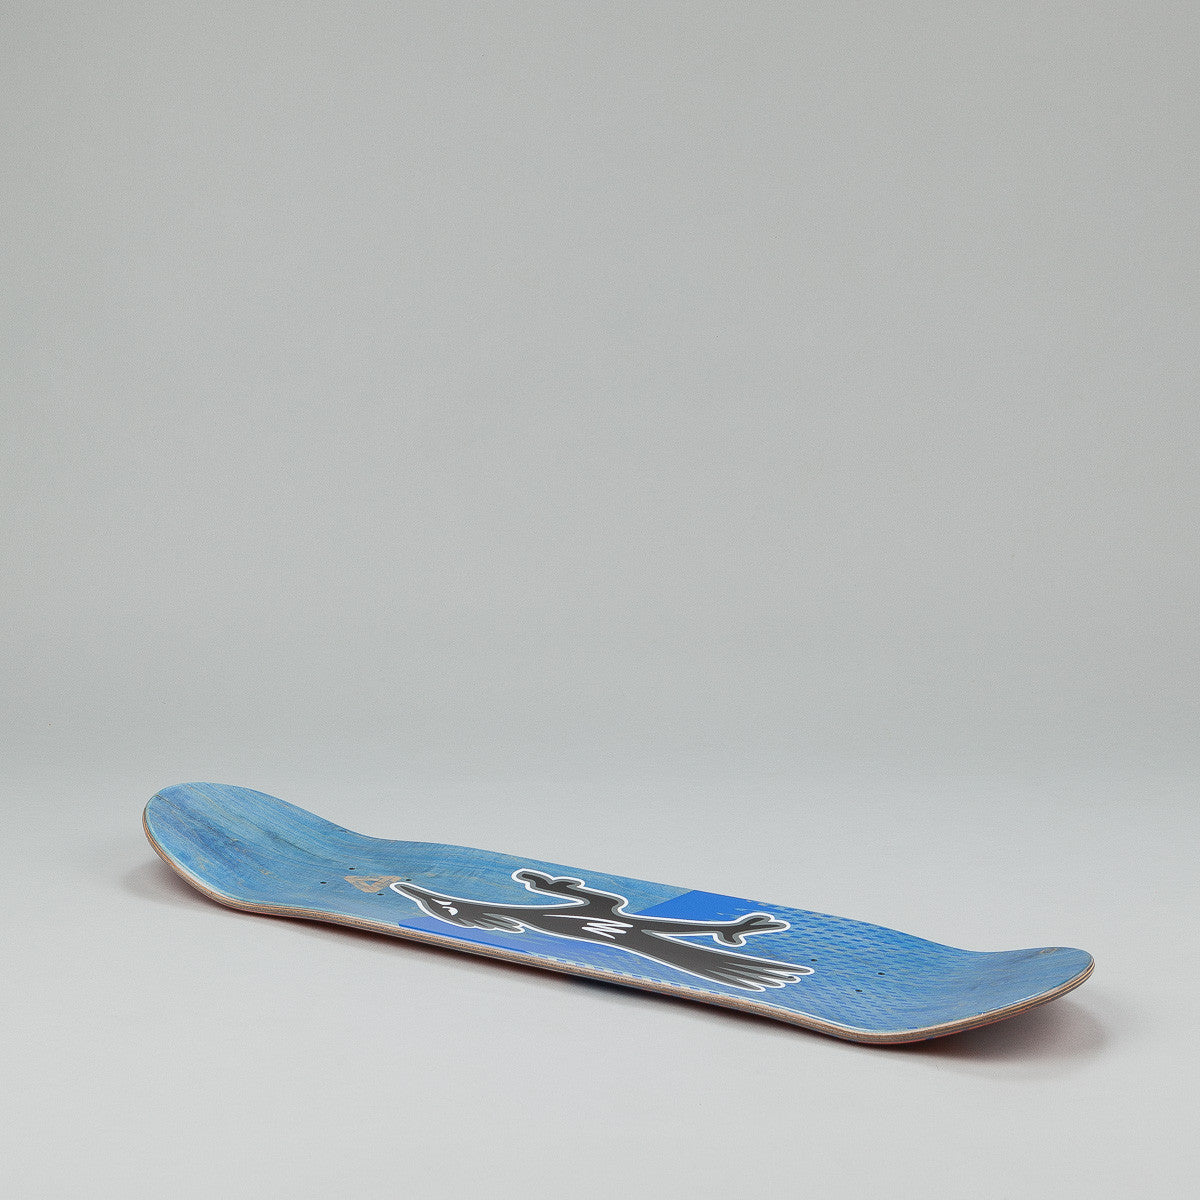 Palace Roadrunner 90's 1 Team Deck - 7.75""